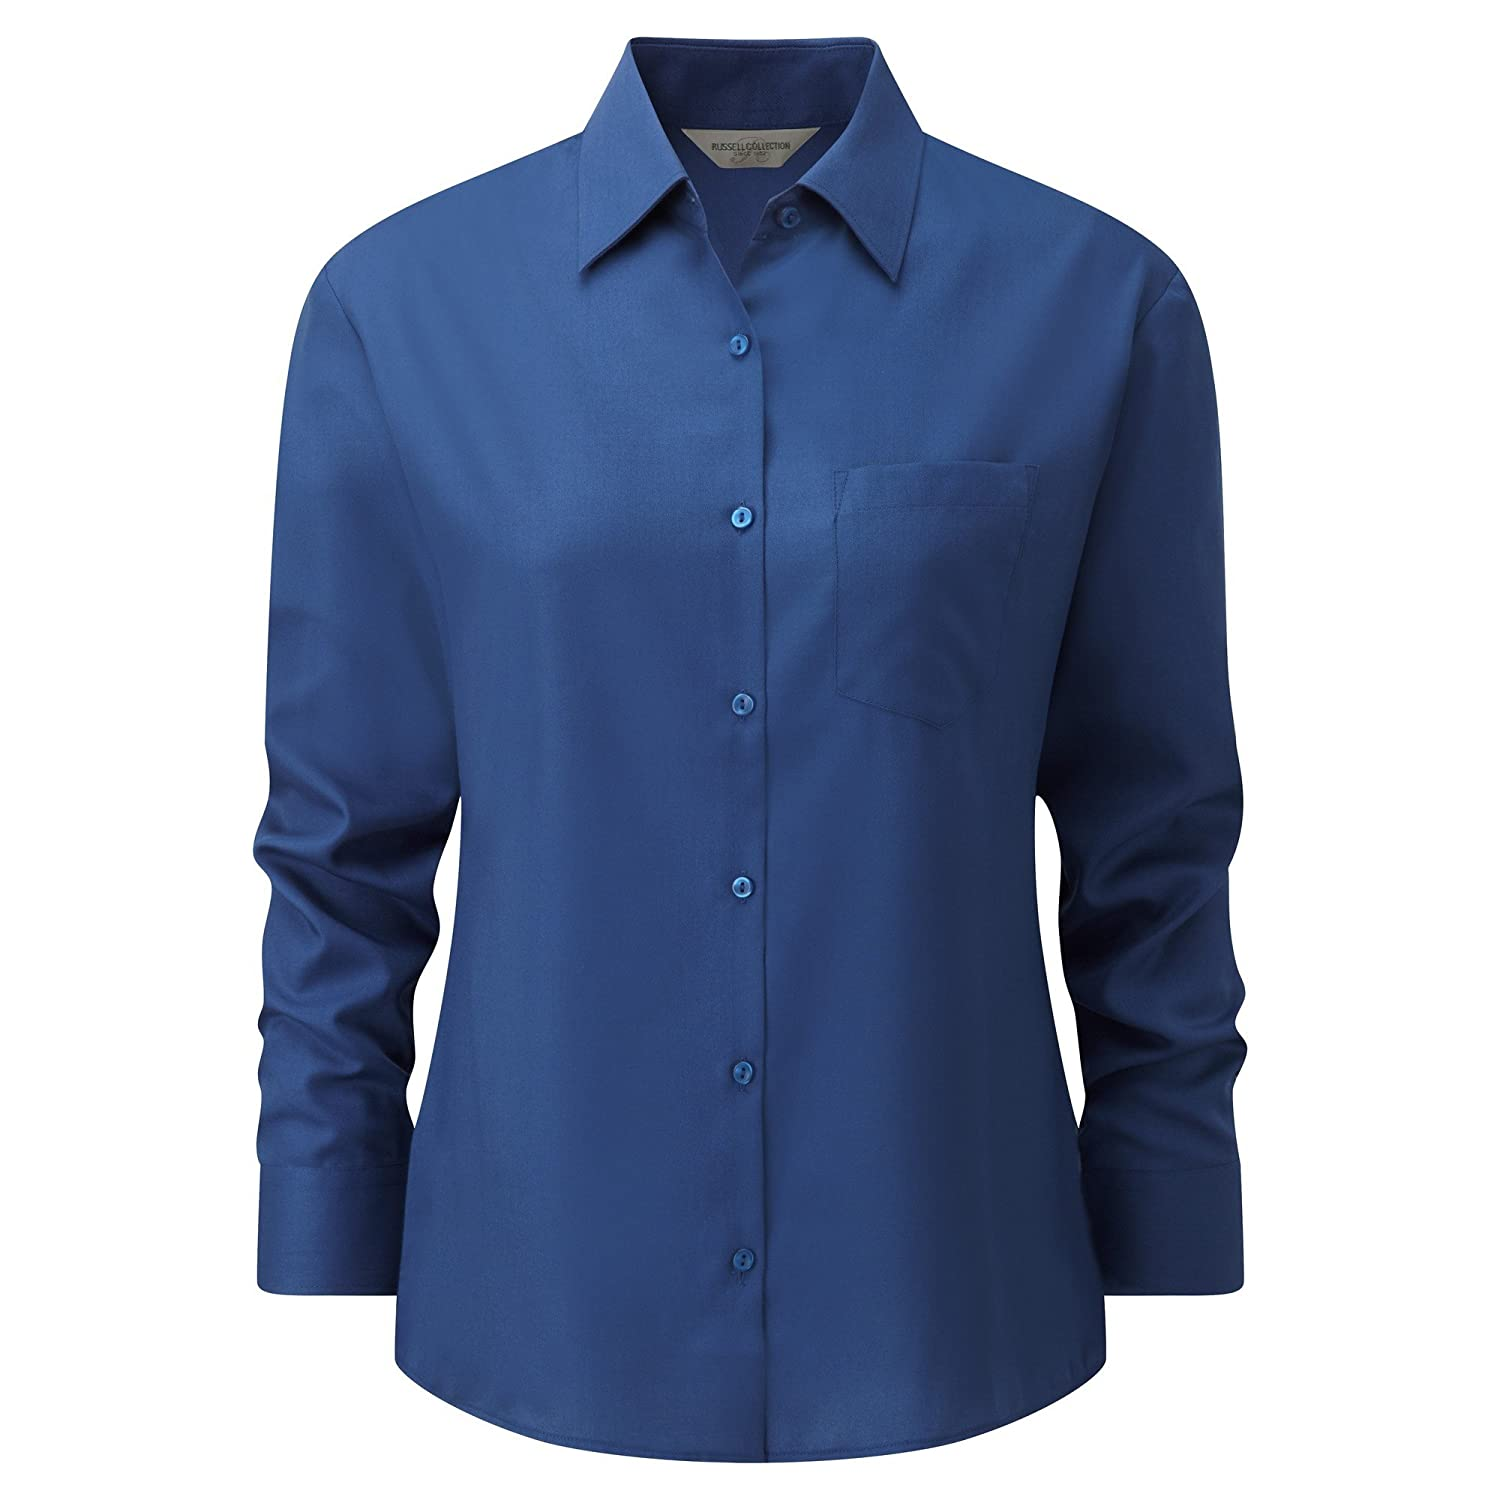 Russell Collection Easy Care Poplin Bluse, Langarm: Amazon.de: Bekleidung